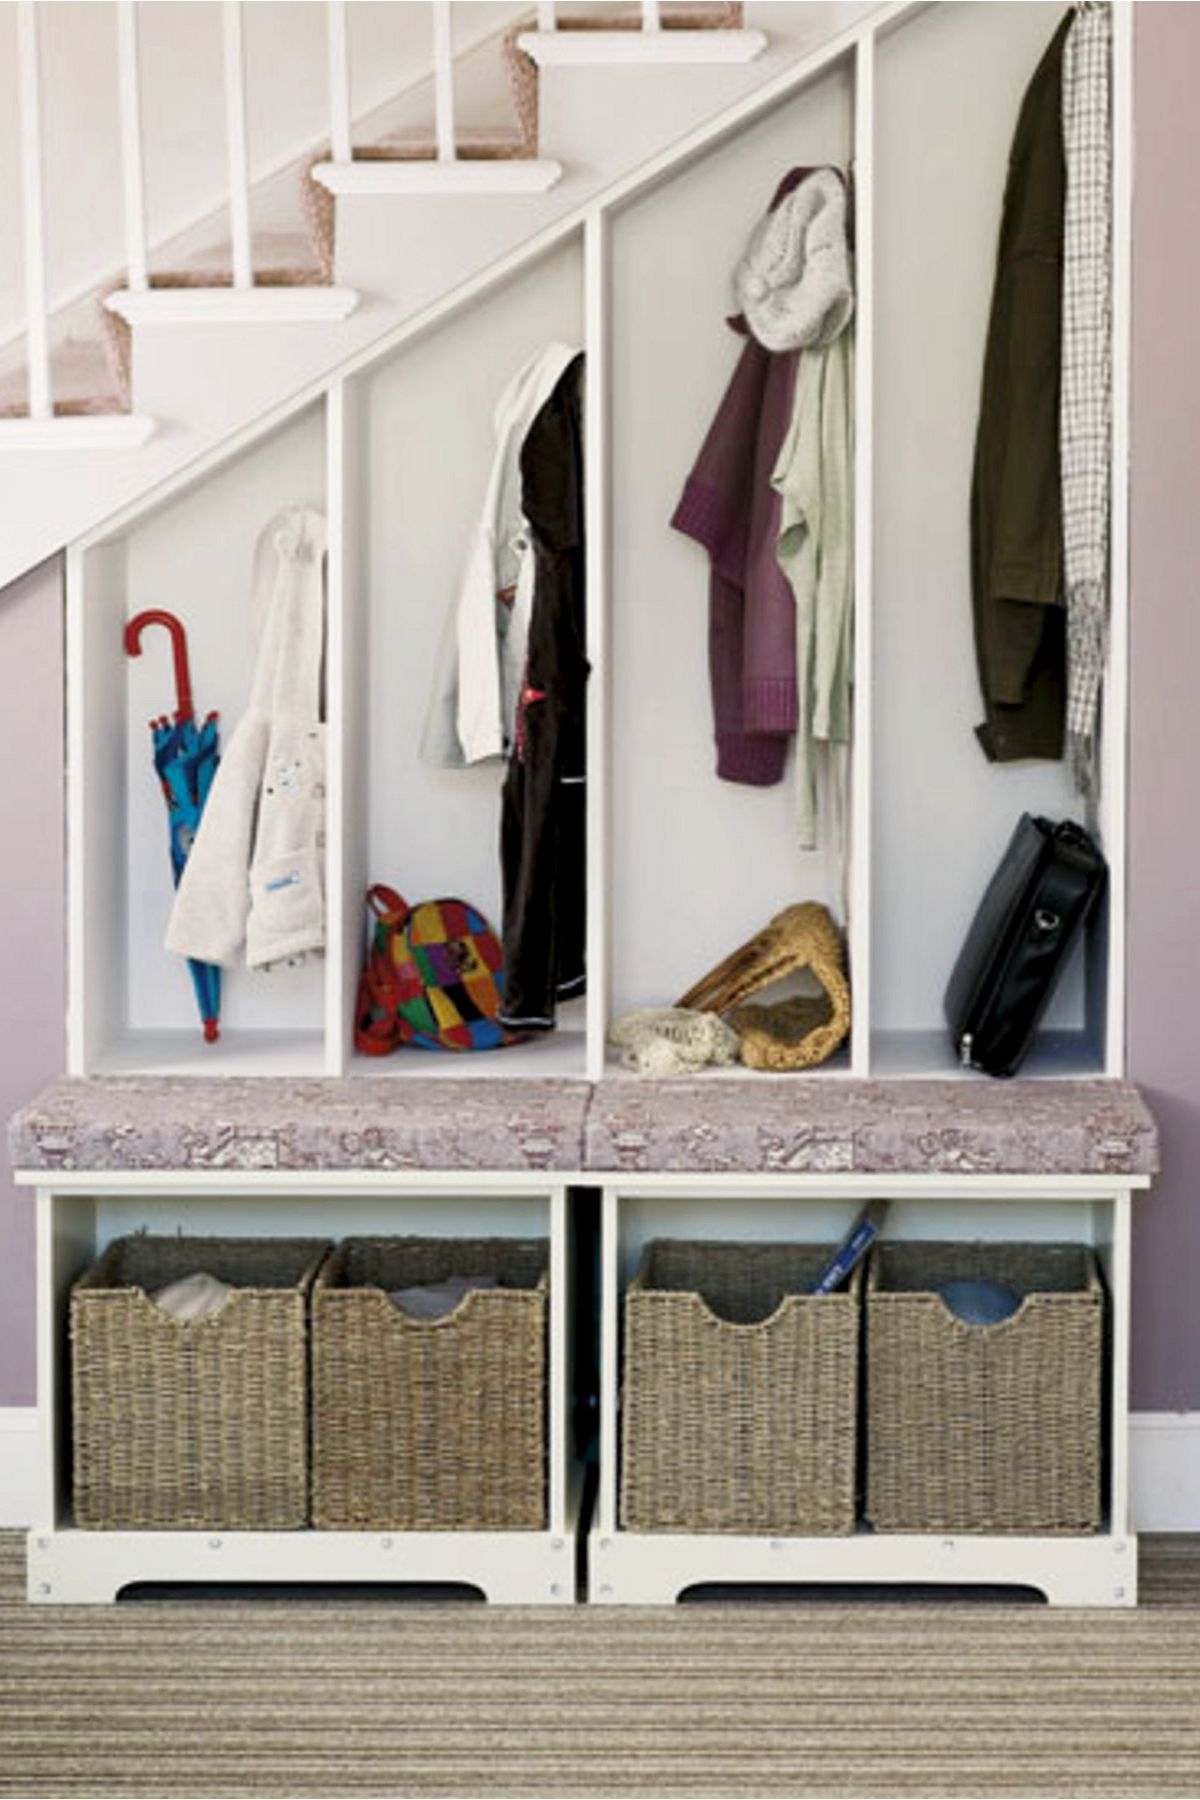 38 Creative Storage Solutions For Small Spaces Awesome Diy Ideas Creative Storage Creative Storage Solutions Room Under Stairs